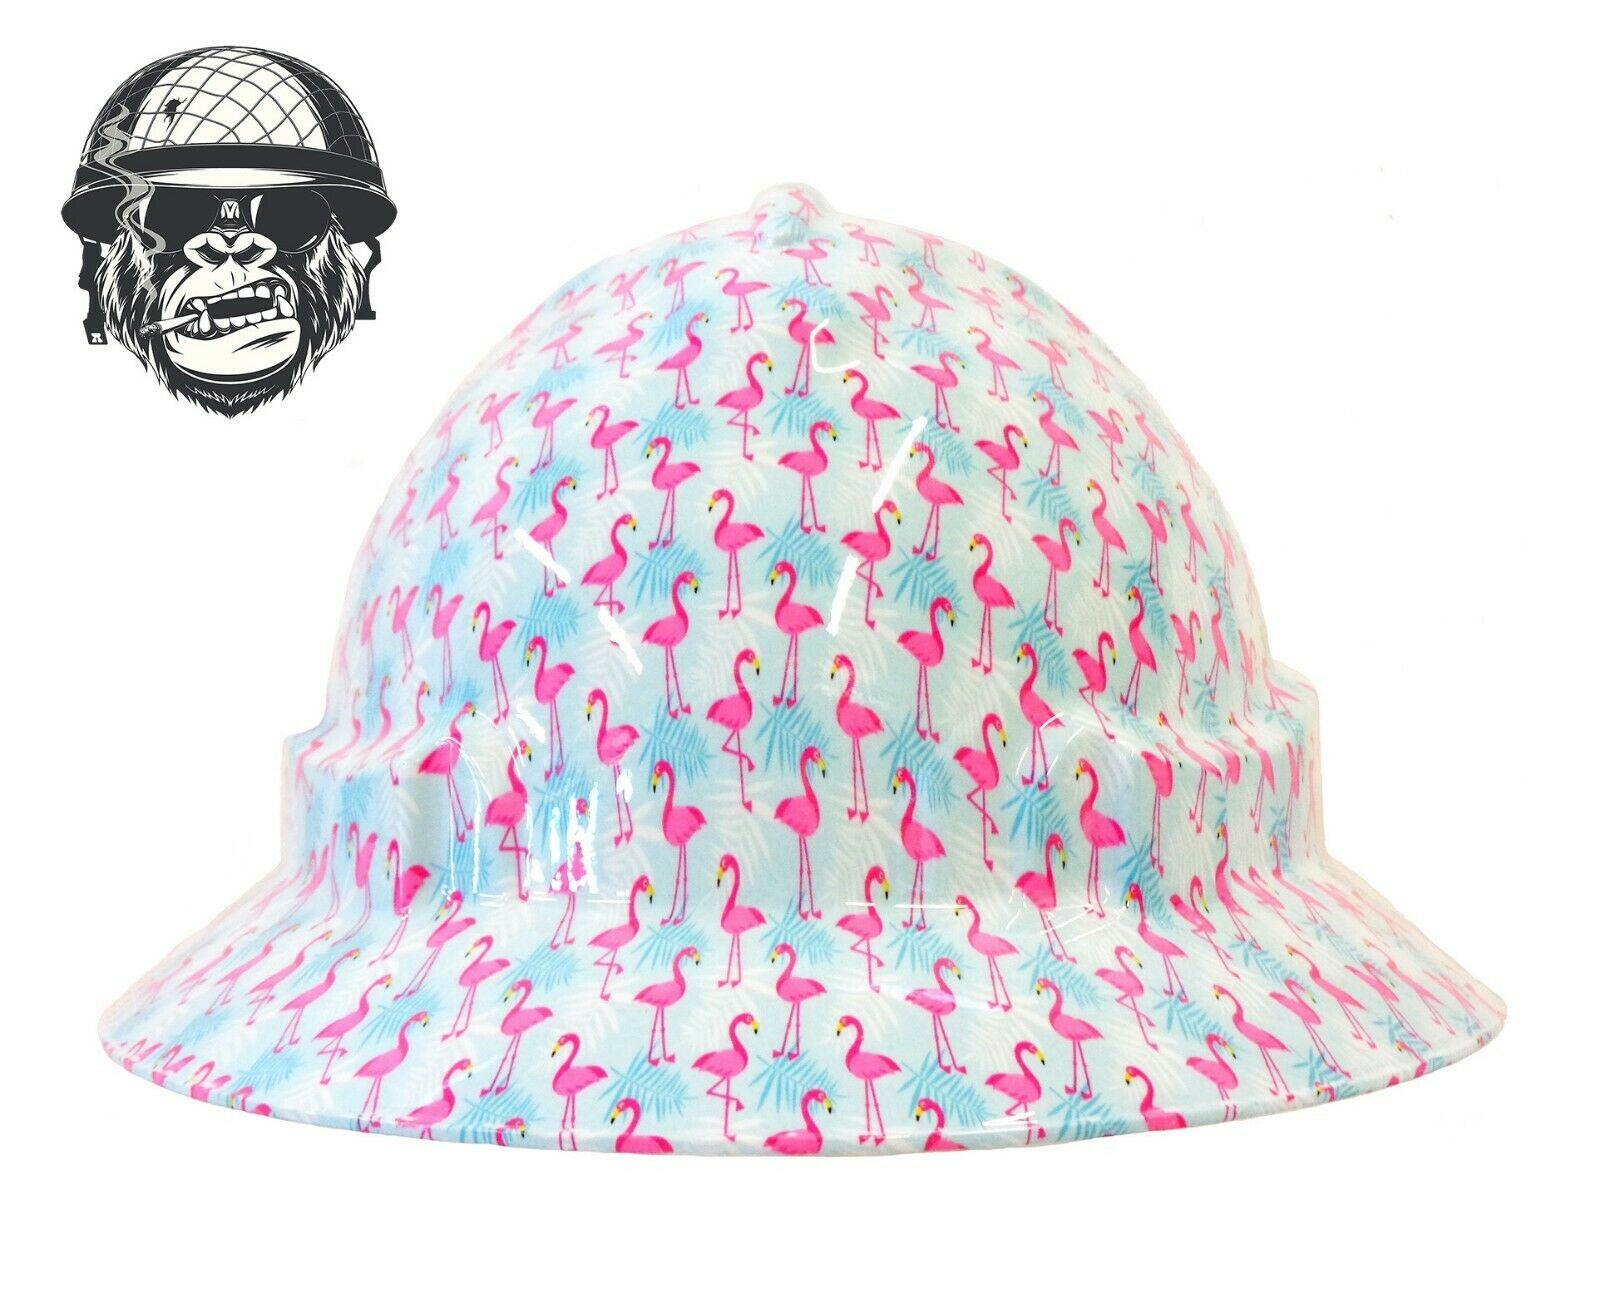 Custom Hydrographic Wide Brim Safety Hard Hats PINK FLAMINGO WIDE